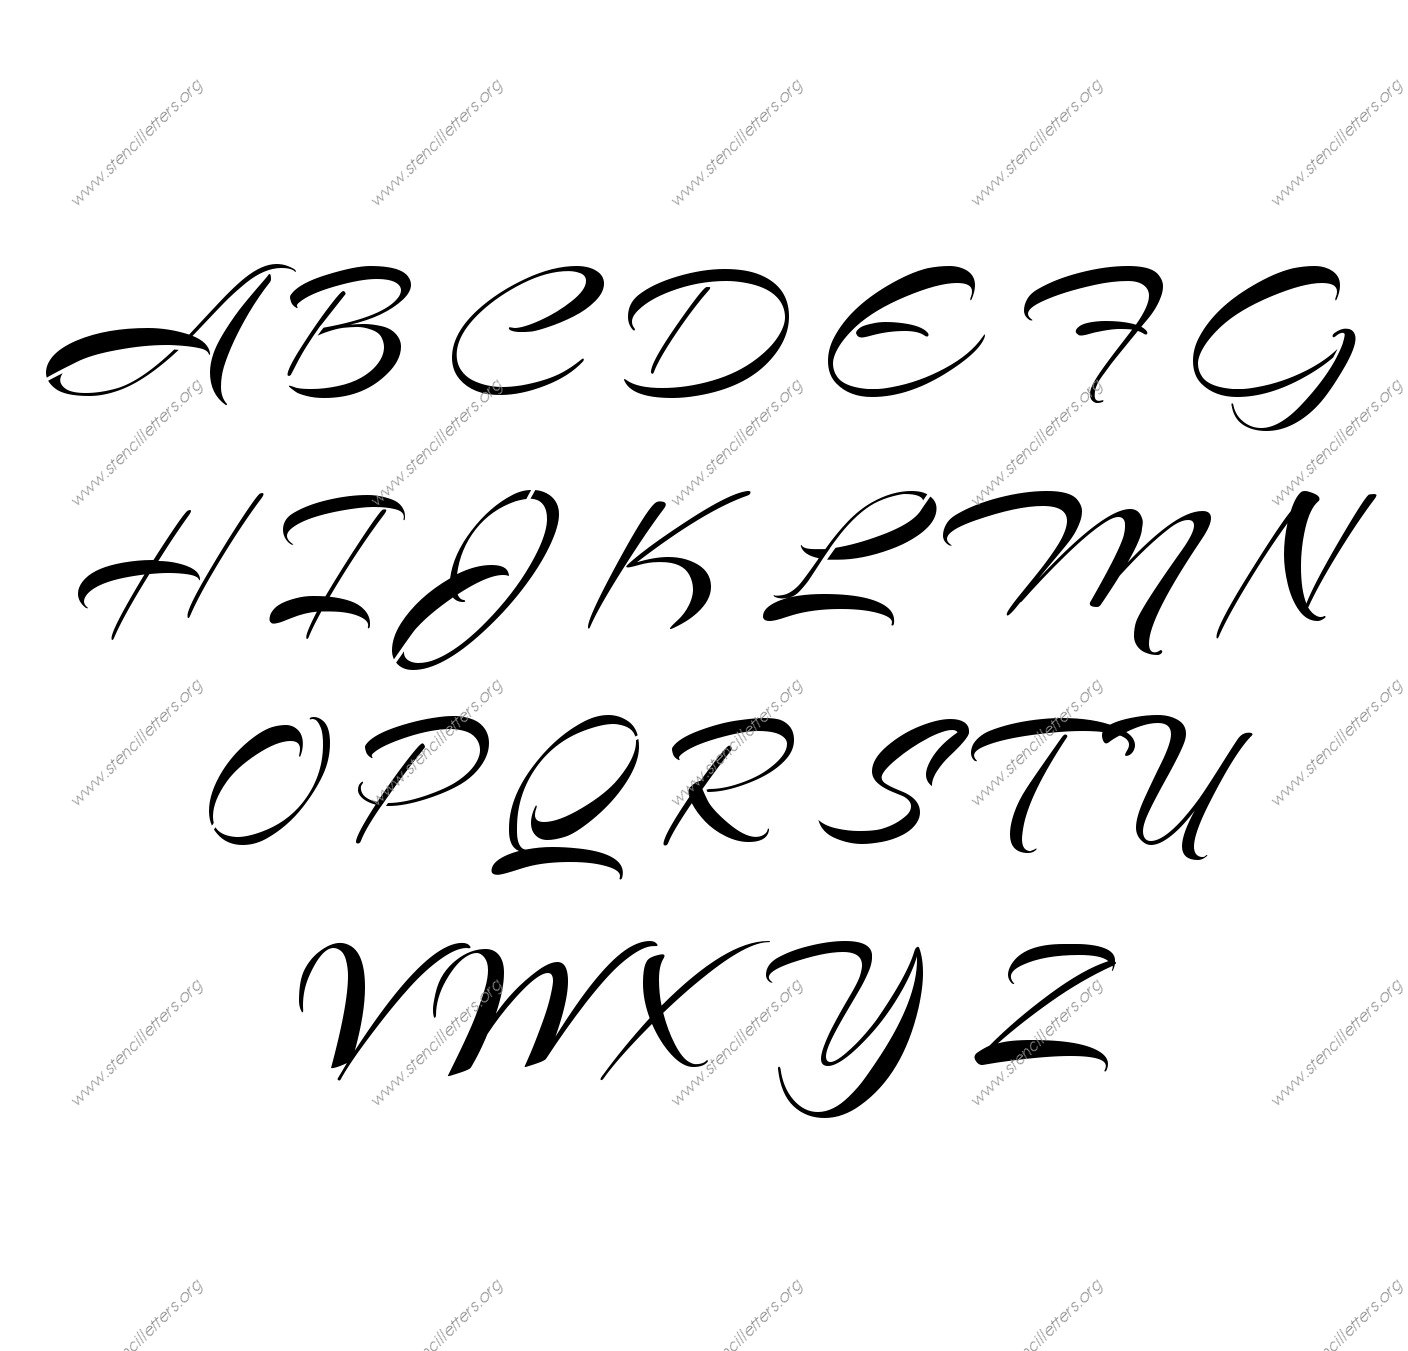 Brushed Cursive Stencil Letter Set